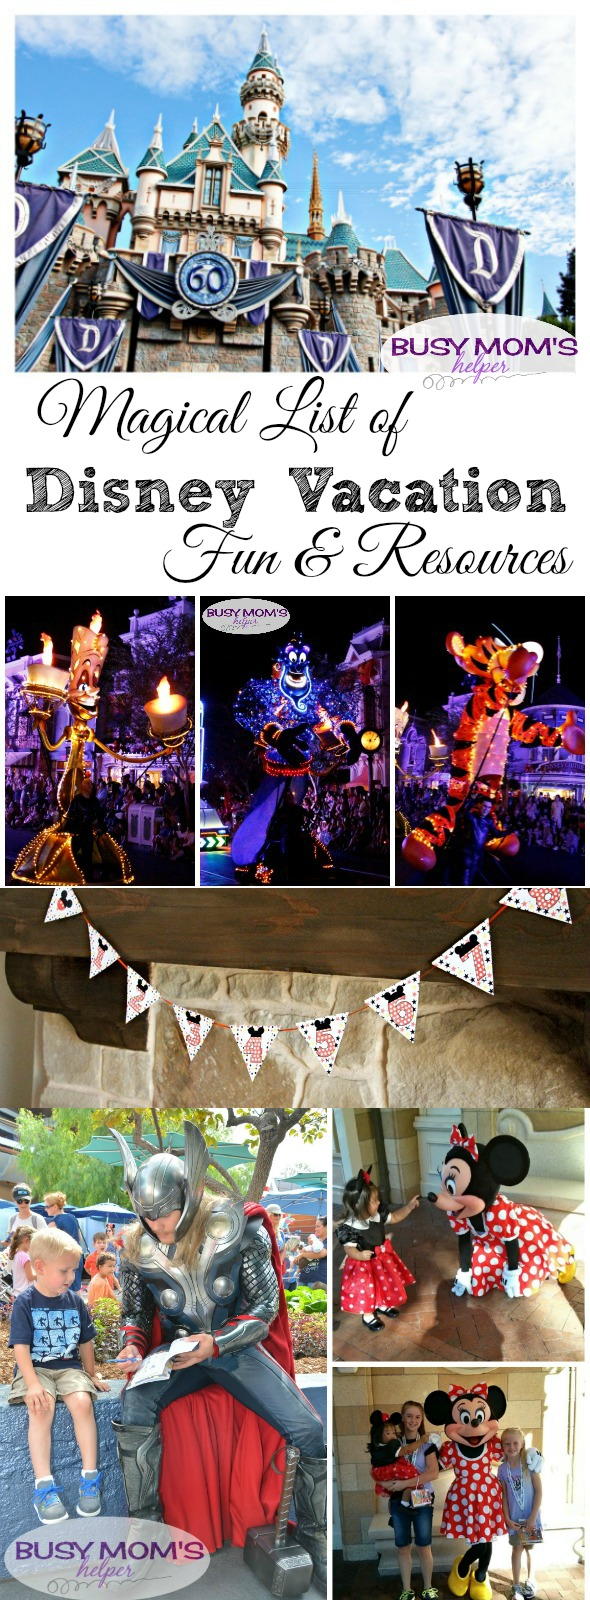 Magical List of Disney Vacation Fun & Resources / by BusyMomsHelper.com / Lots of Disney tips and recaps